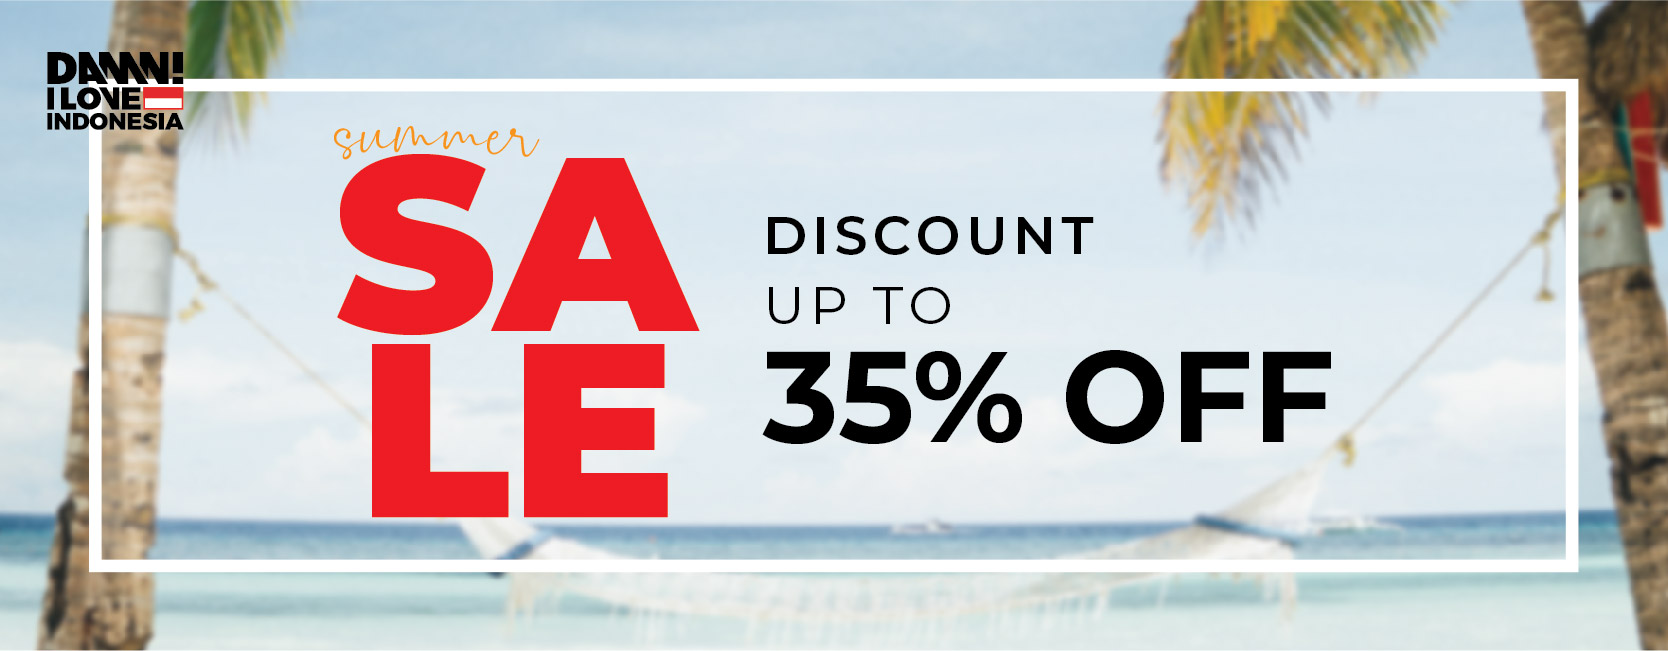 DAMN! I LOVE INDONESIA Promo SUMMER SALE Disc up to 35% Off